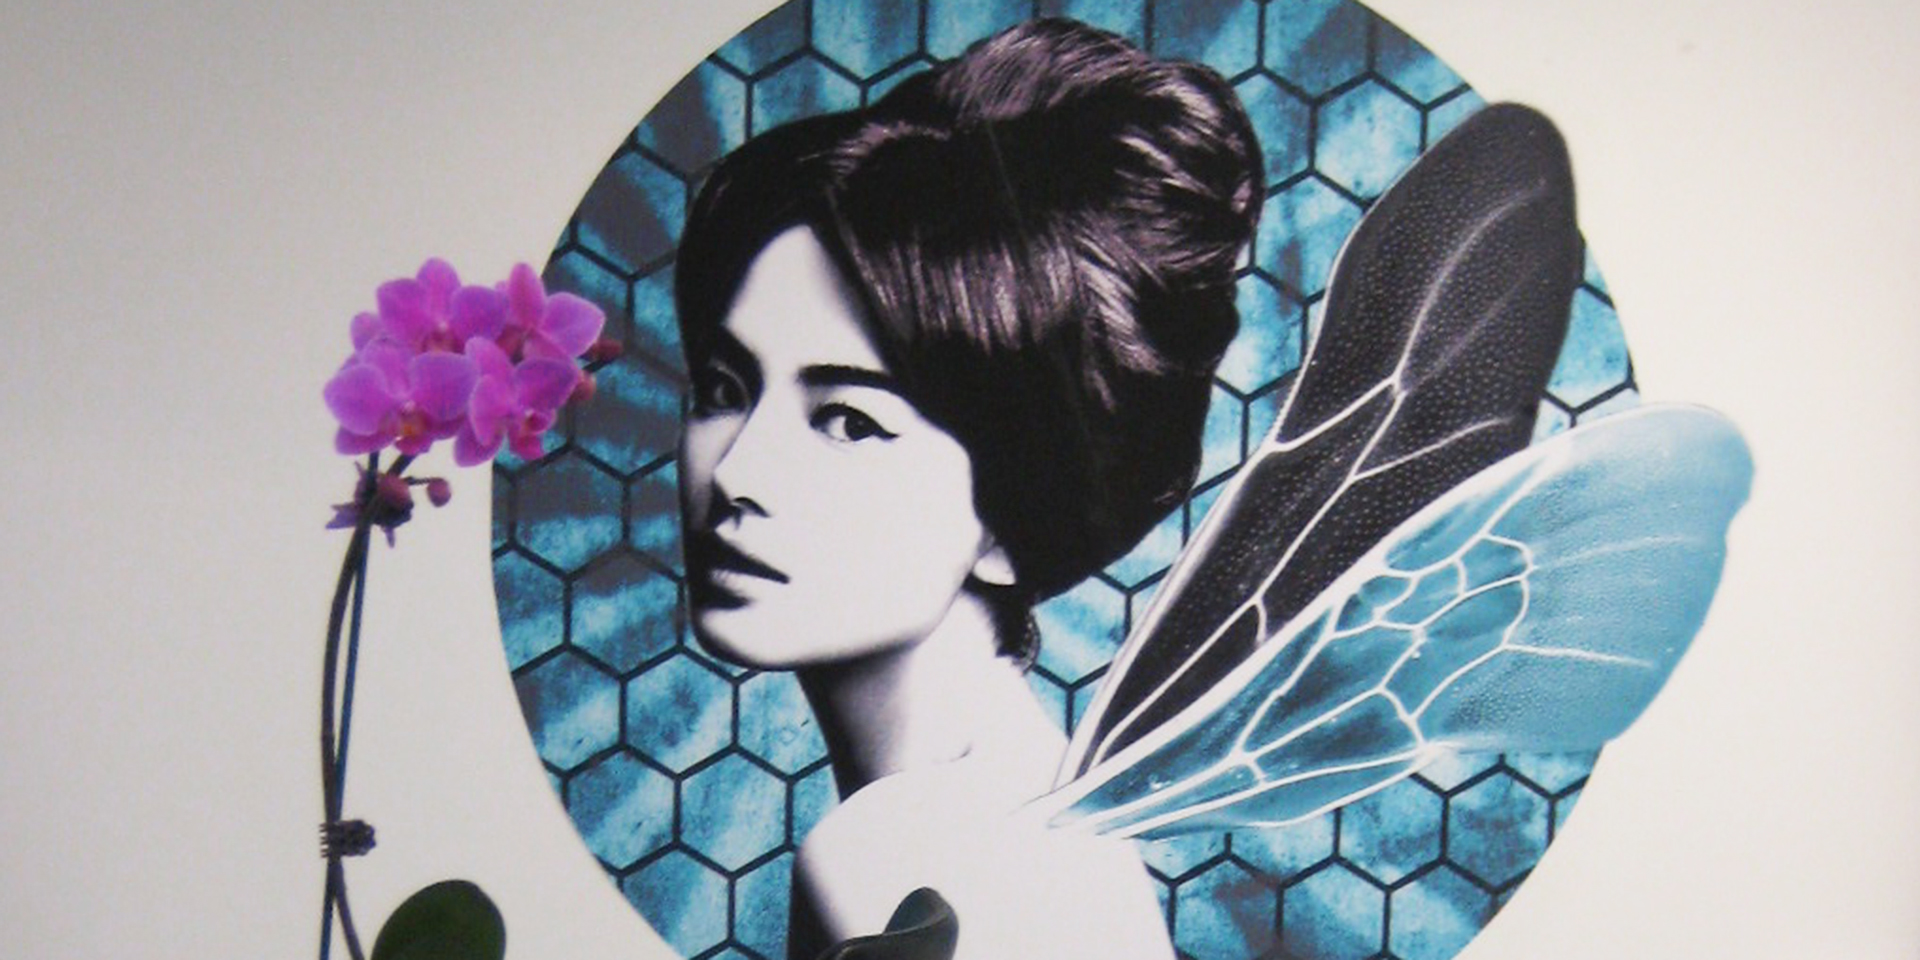 Beehive Salon Edinburgh Wall art of model with a beehive hairstyle and insect wings protruding from back